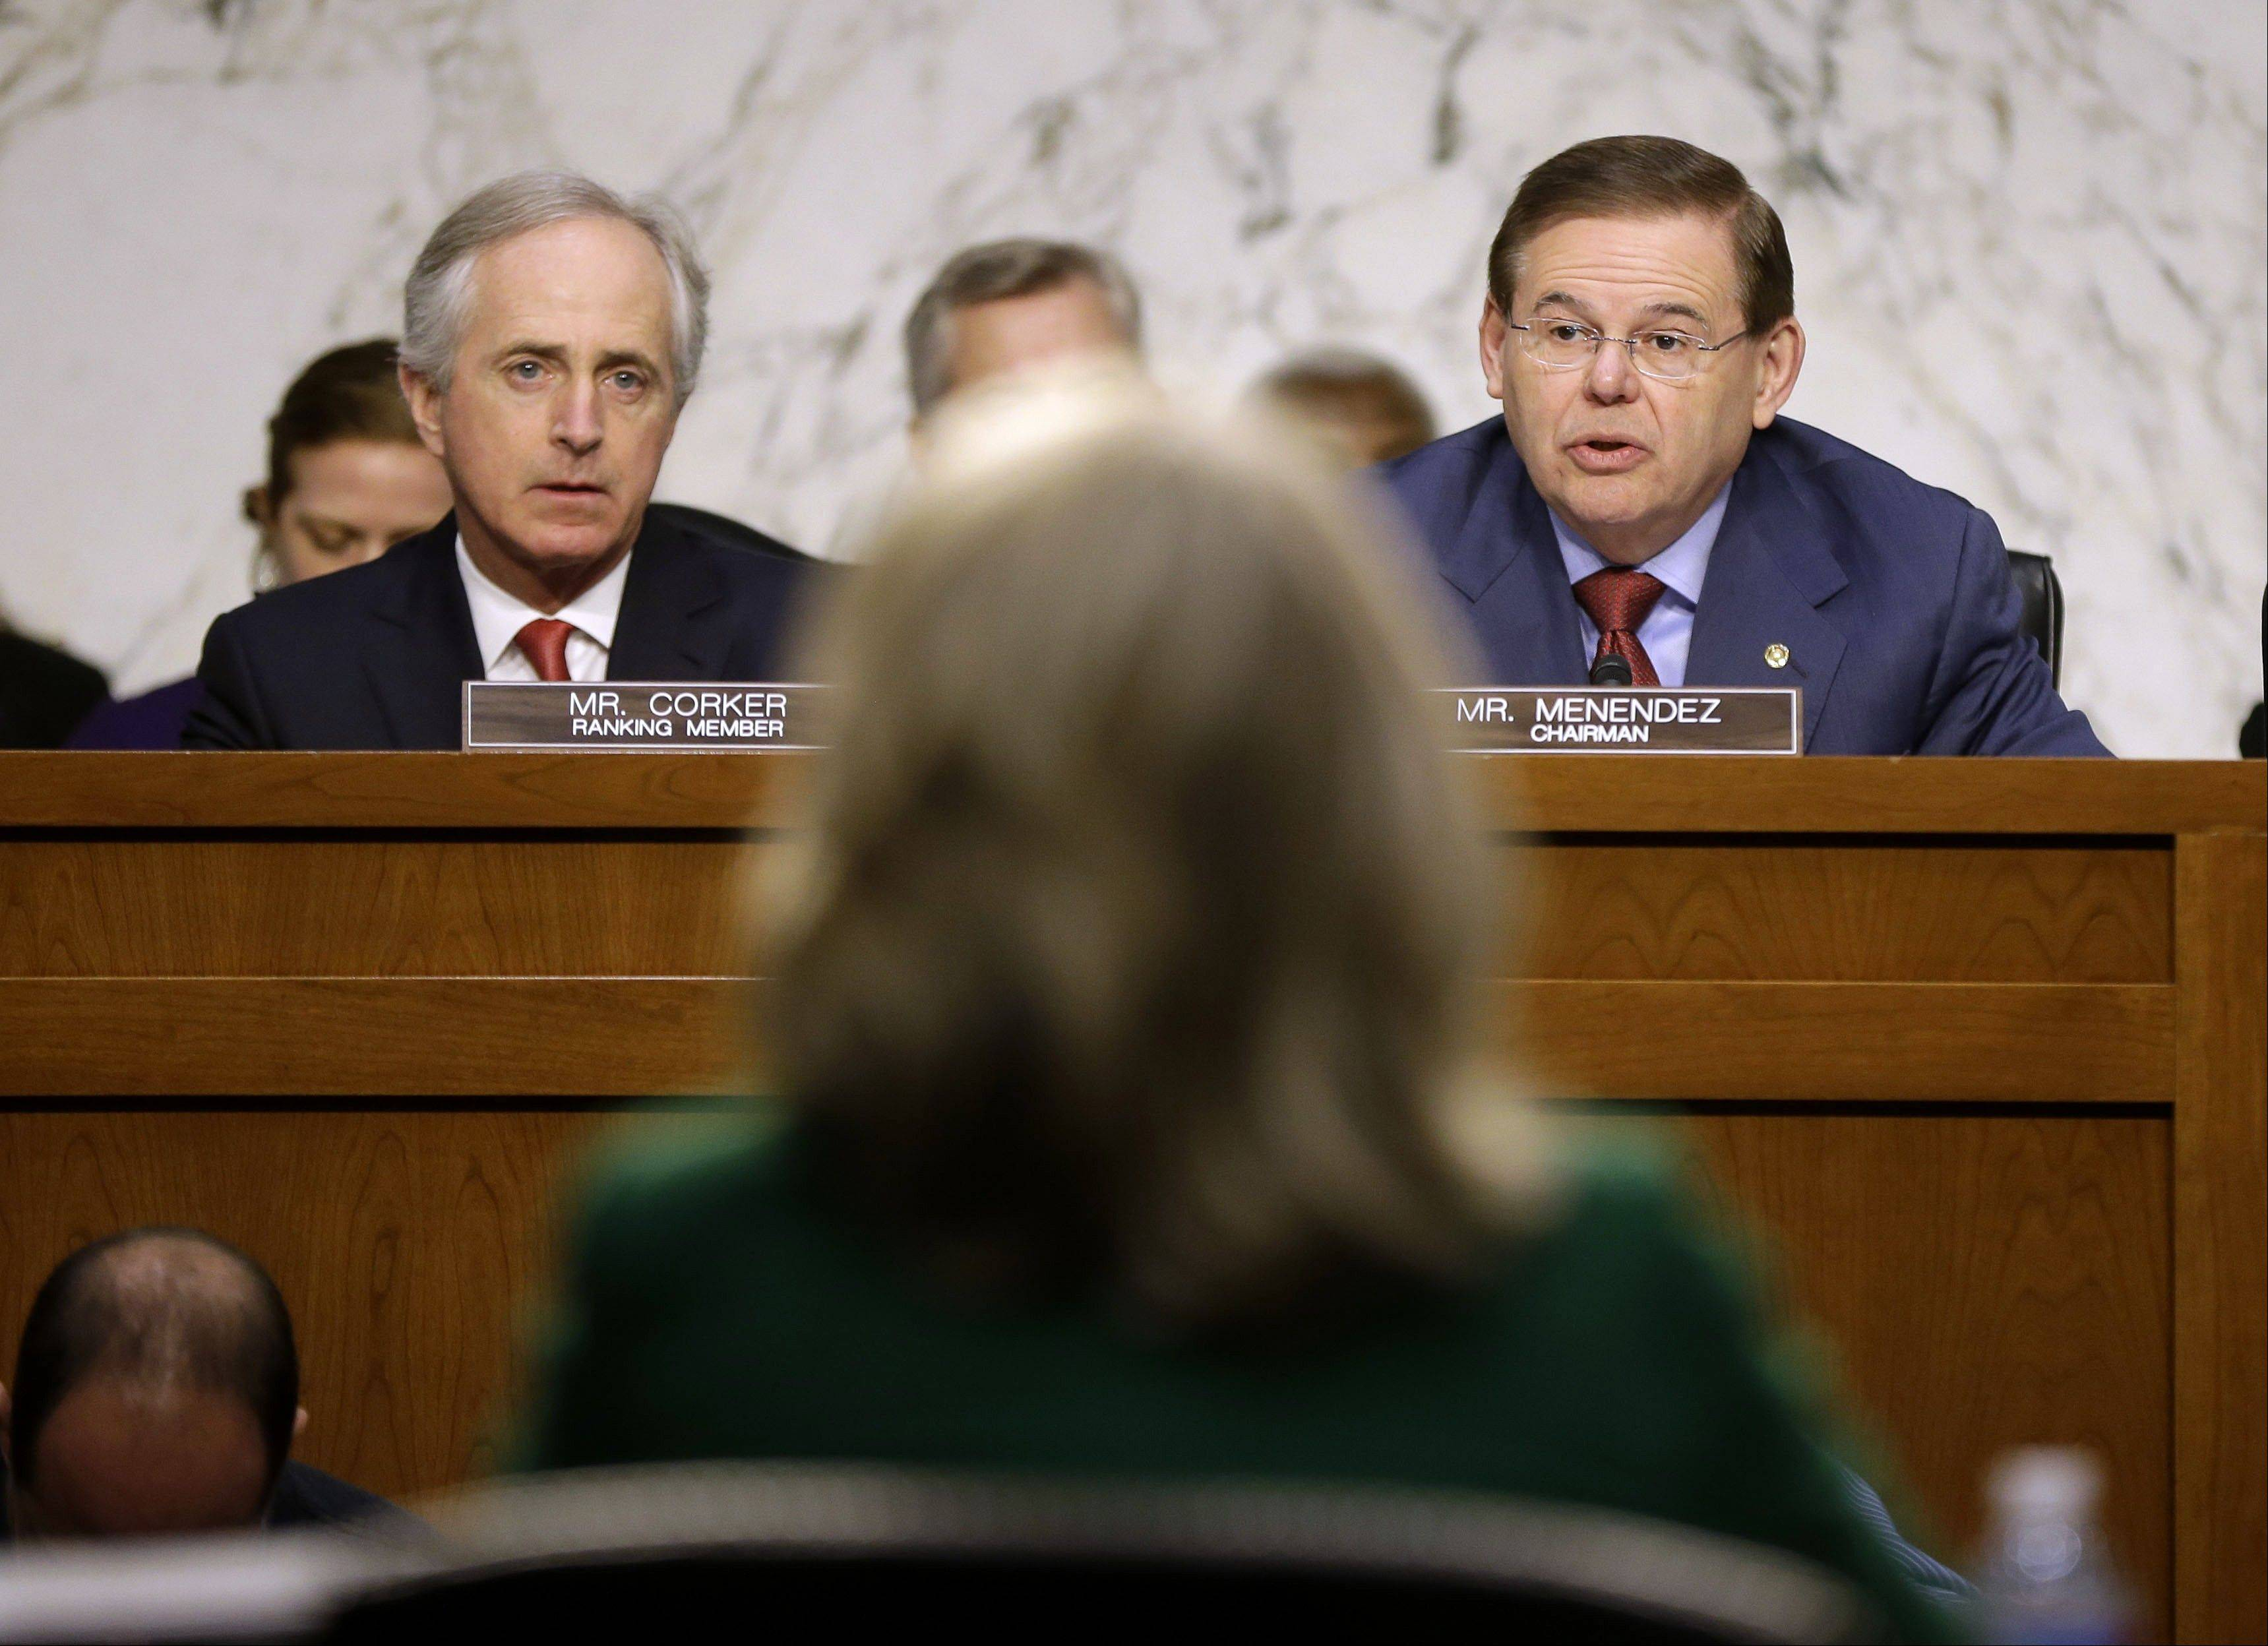 Secretary of State Hillary Rodham Clinton, center, back to camera, and the Senate Foreign Relations Committee ranking Republican Sen. Bob Corker, R-Tenn., left, listens as the committee's presiding Sen. Robert Menendez, D-N.J., speaks on Capitol Hill in Washington, Wednesday, Jan. 23, 2013, during the committee's hearing on the deadly September attack on the U.S. diplomatic mission in Benghazi, Libya, that killed Ambassador Chris Stevens and three other Americans.